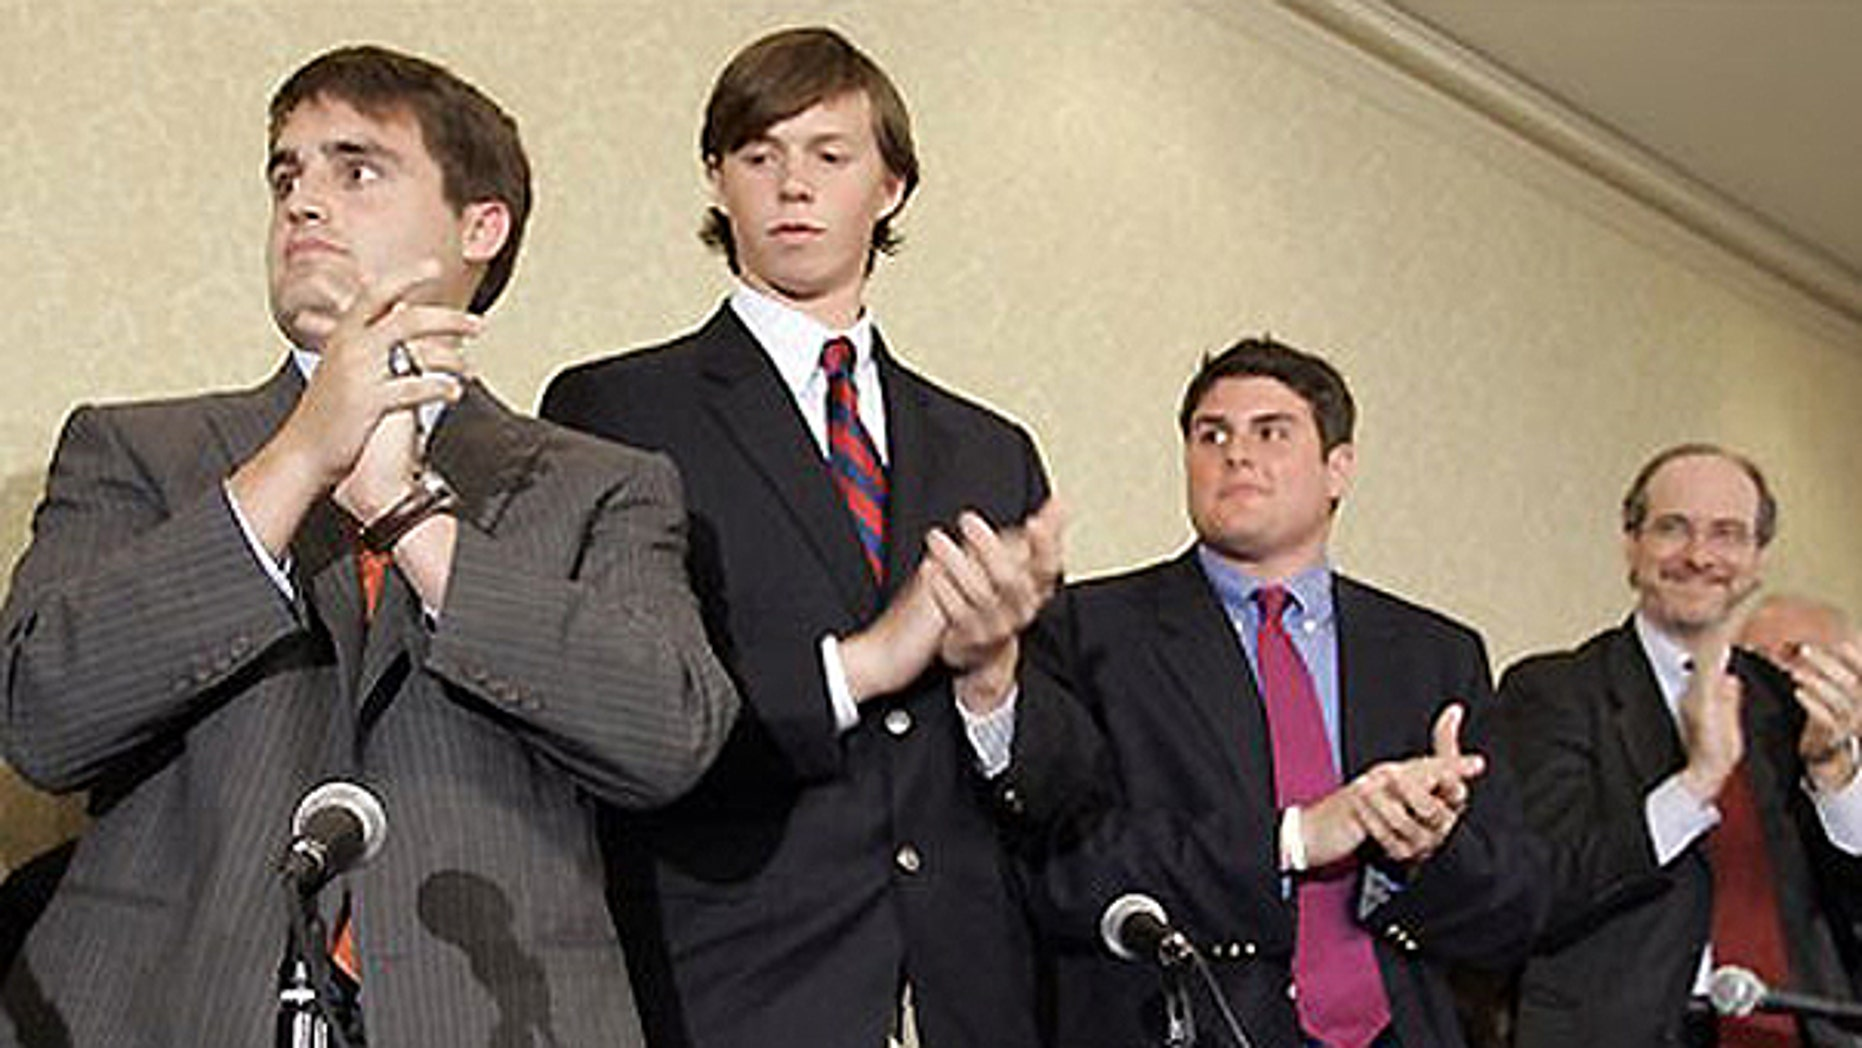 In this April 11, 2006, file photo, from left, David Evans, Collin Finnerty, Reade Seligmann, and lawyer Jim Cooney, right, applaud during a news conference in Raleigh, N.C.